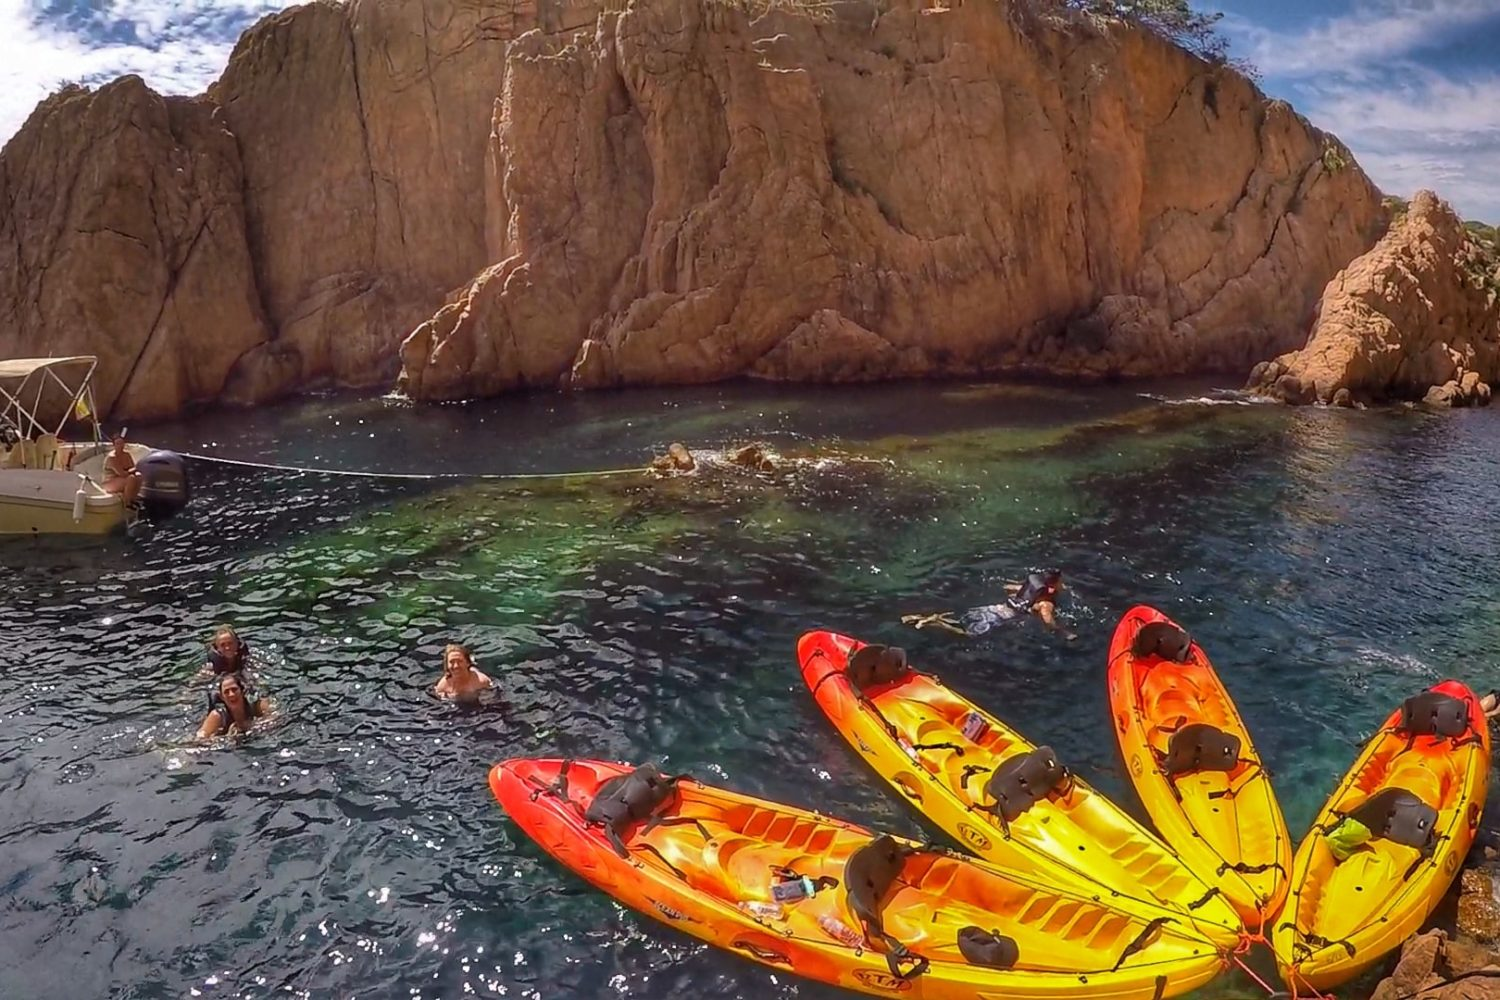 Top kayaking experience in the Costa Brava. Small group and fully personalized tours from Barcelona.